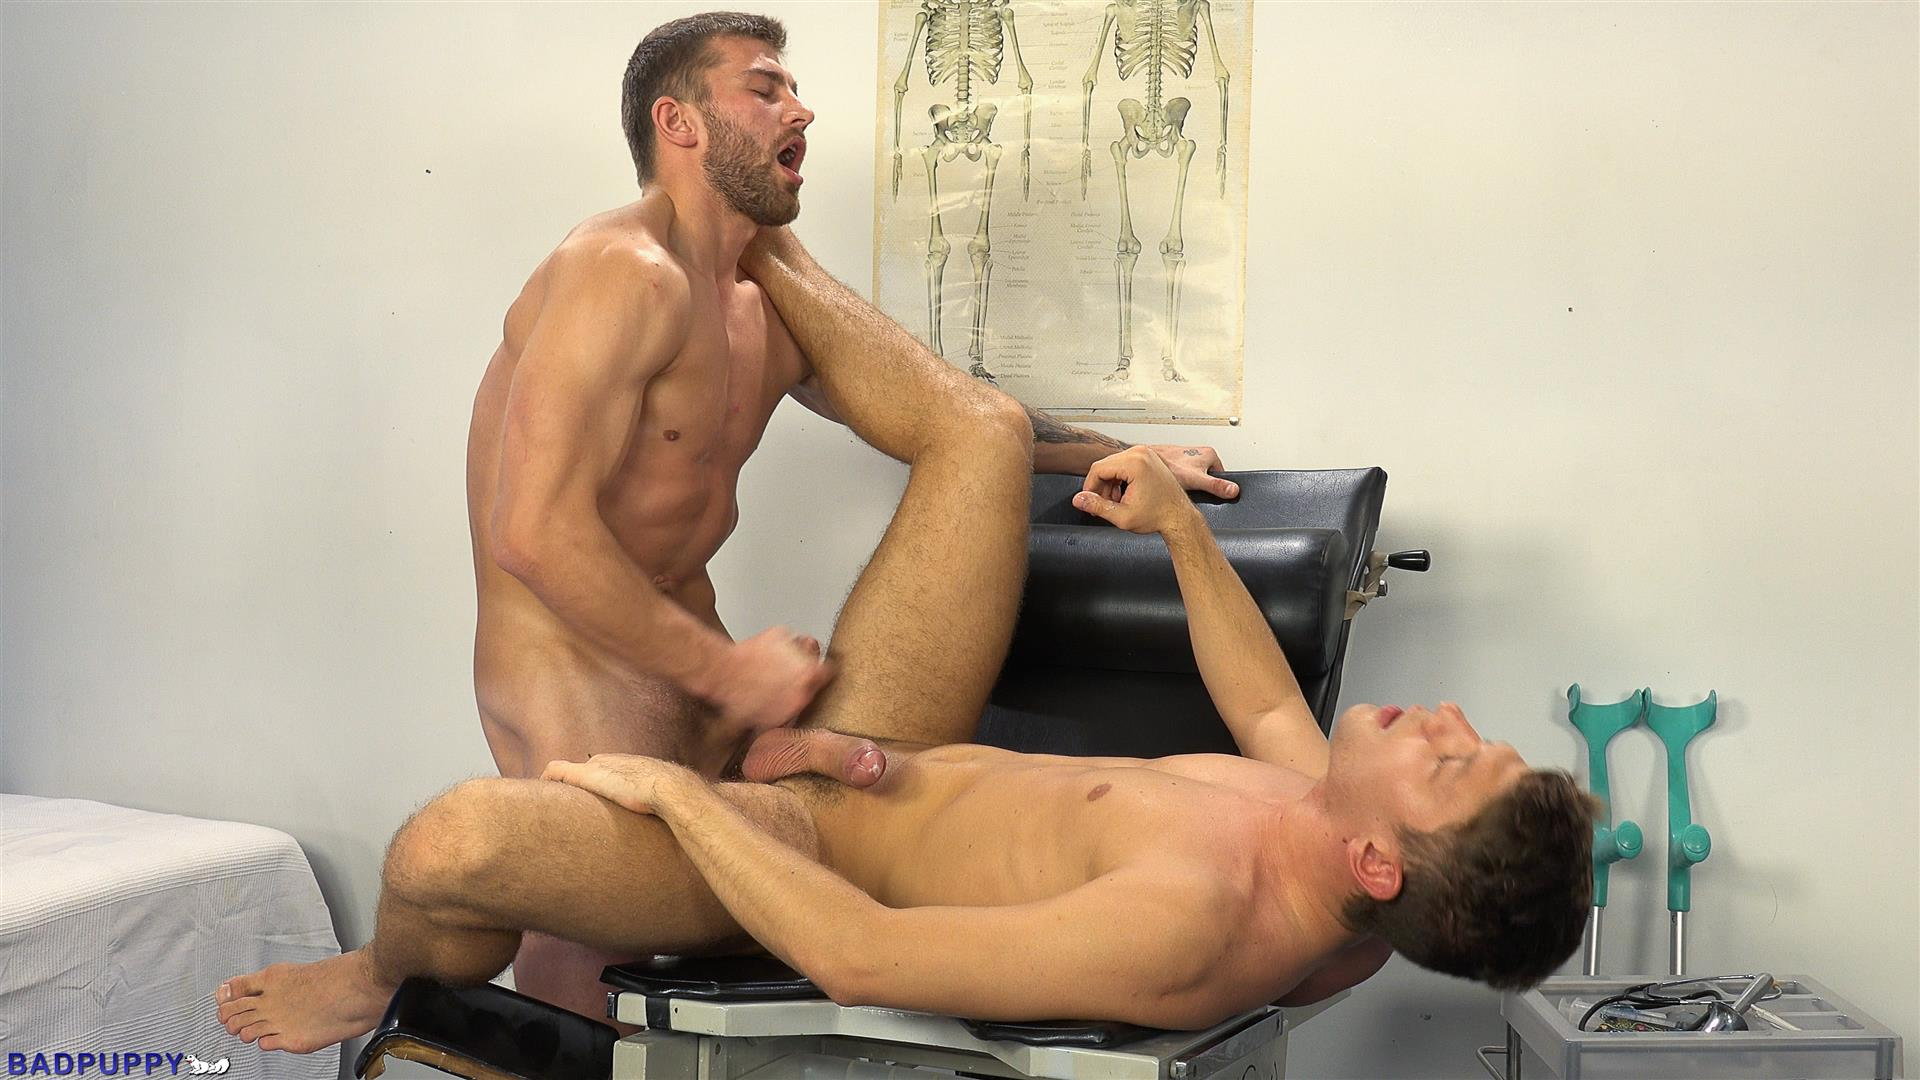 Badpuppy-Nikol-Monak-and-Rosta-Benecky-Czech-Guys-Fucking-Bareback-Amateur-Gay-Porn-31 Czech Hunks With Big Uncut Cocks Fucking At The Doctors Office